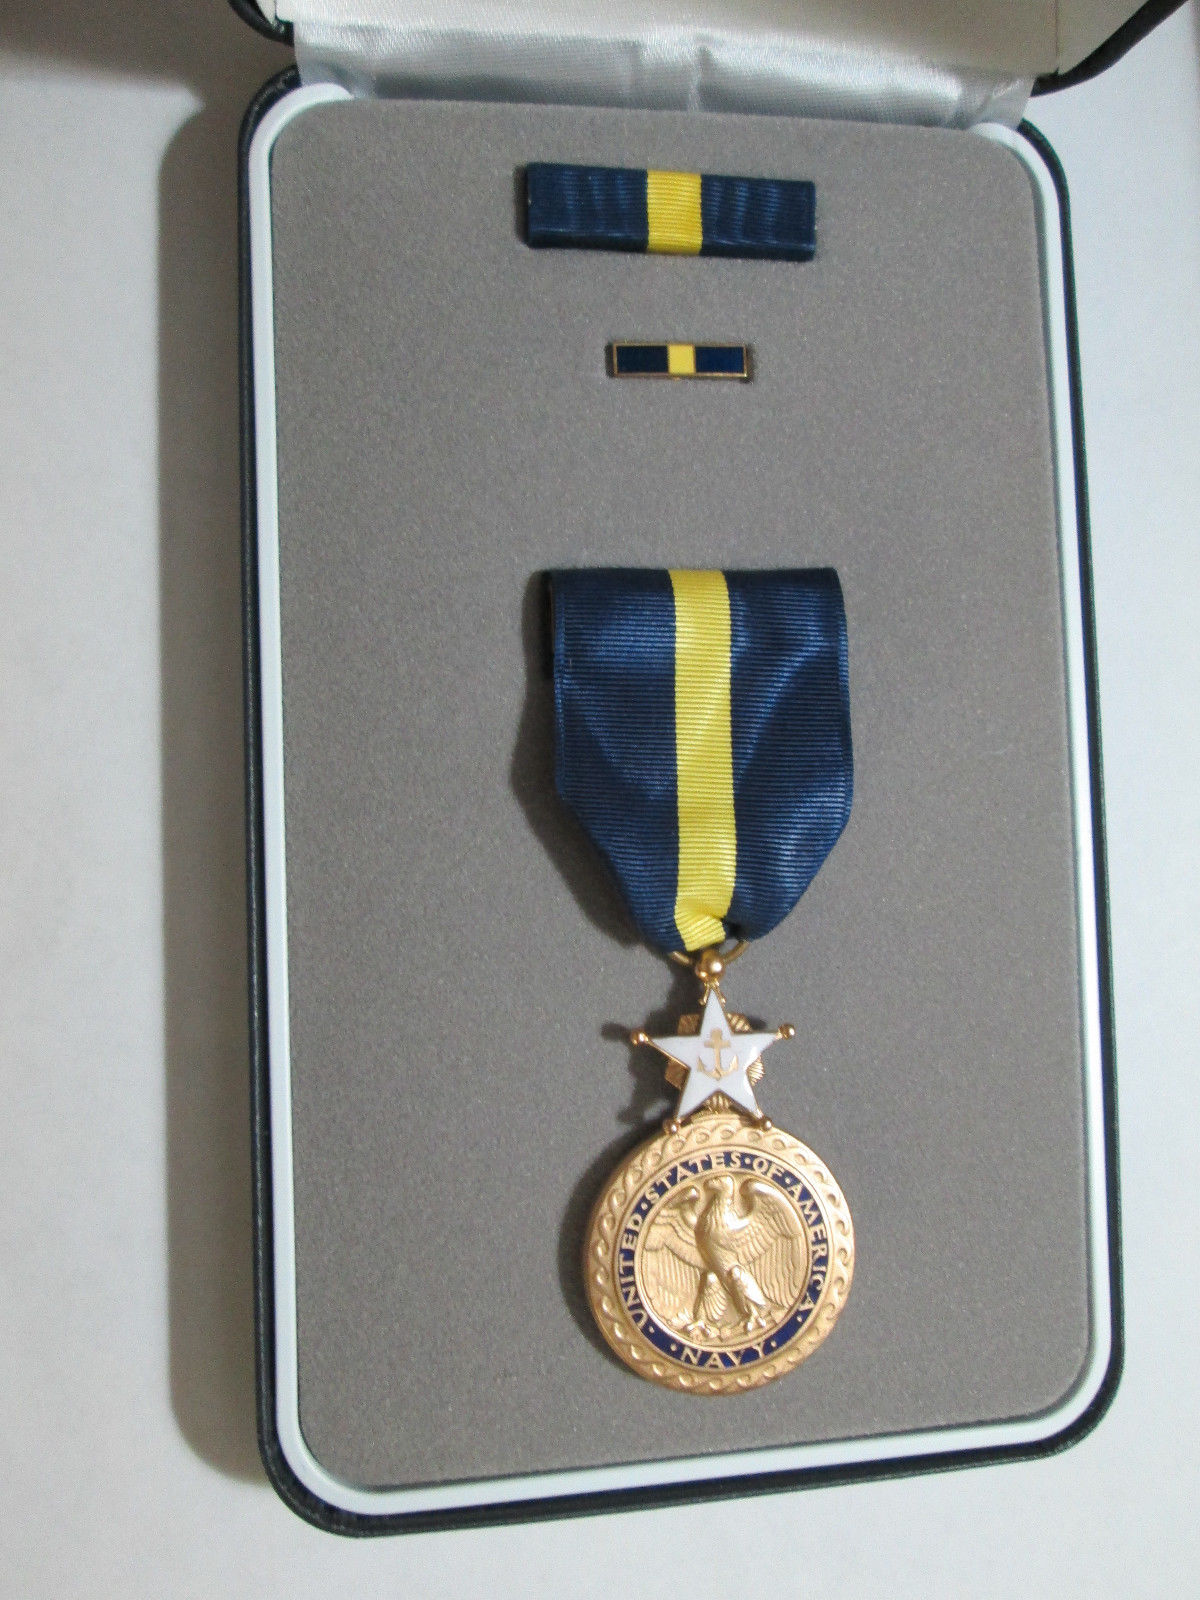 US NAVY MARINES DISTINGUISHED SERVICE MEDAL ORDER FOR OFFICERS